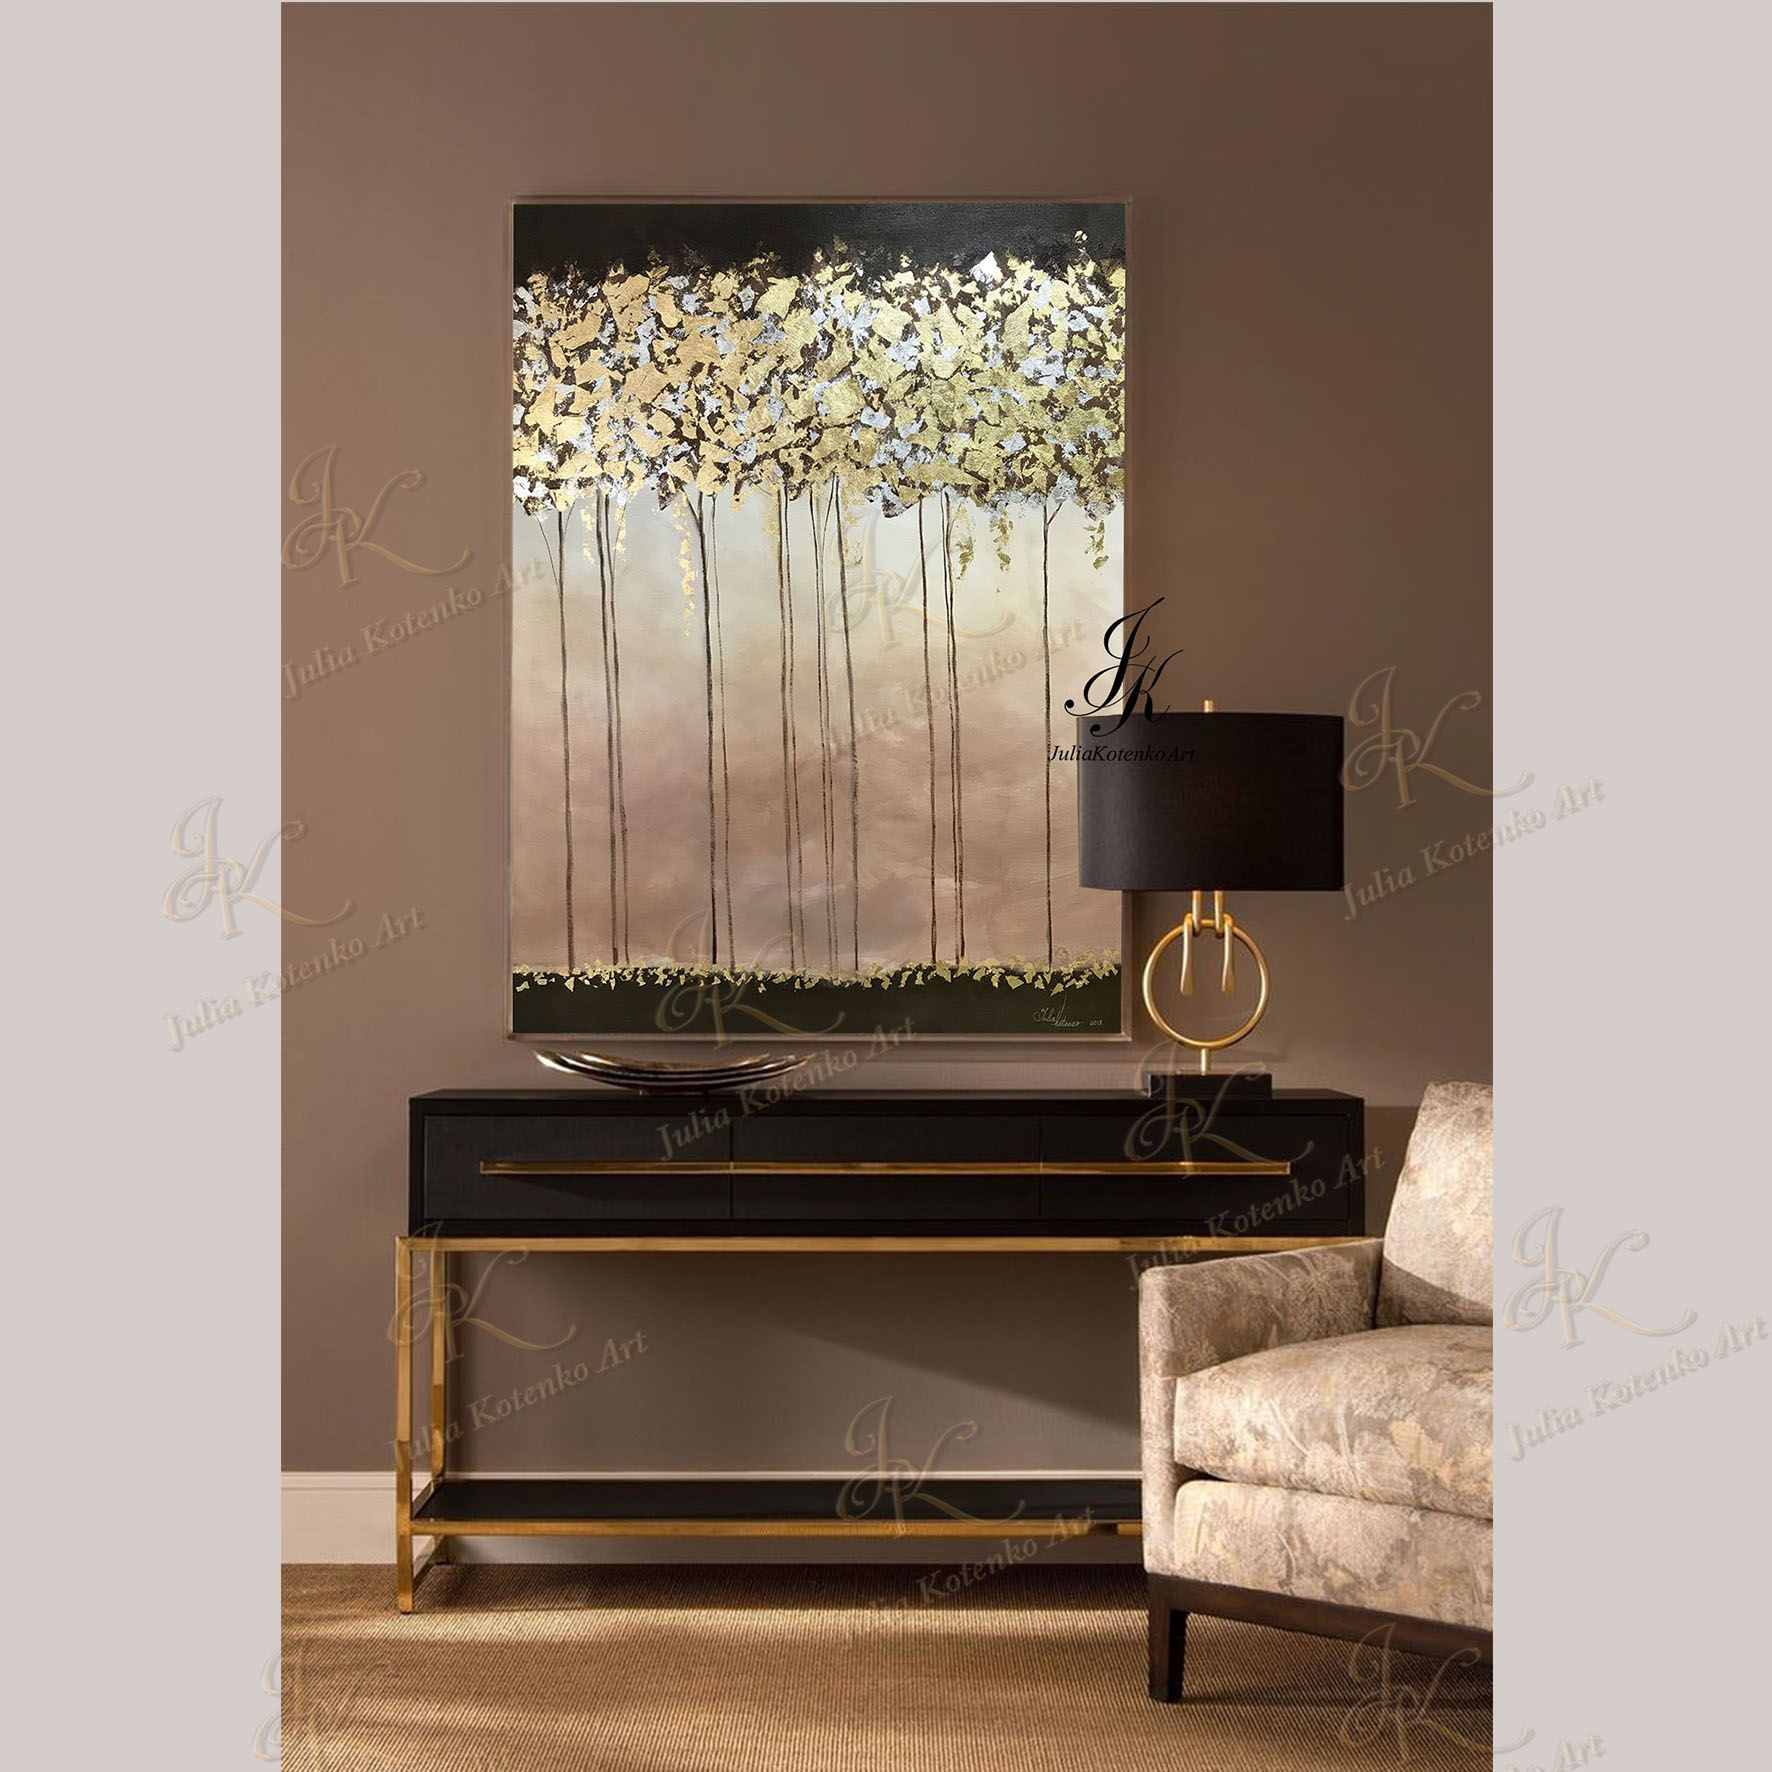 Large abstract oil painting gold leaf art on canvas by julia kotenko